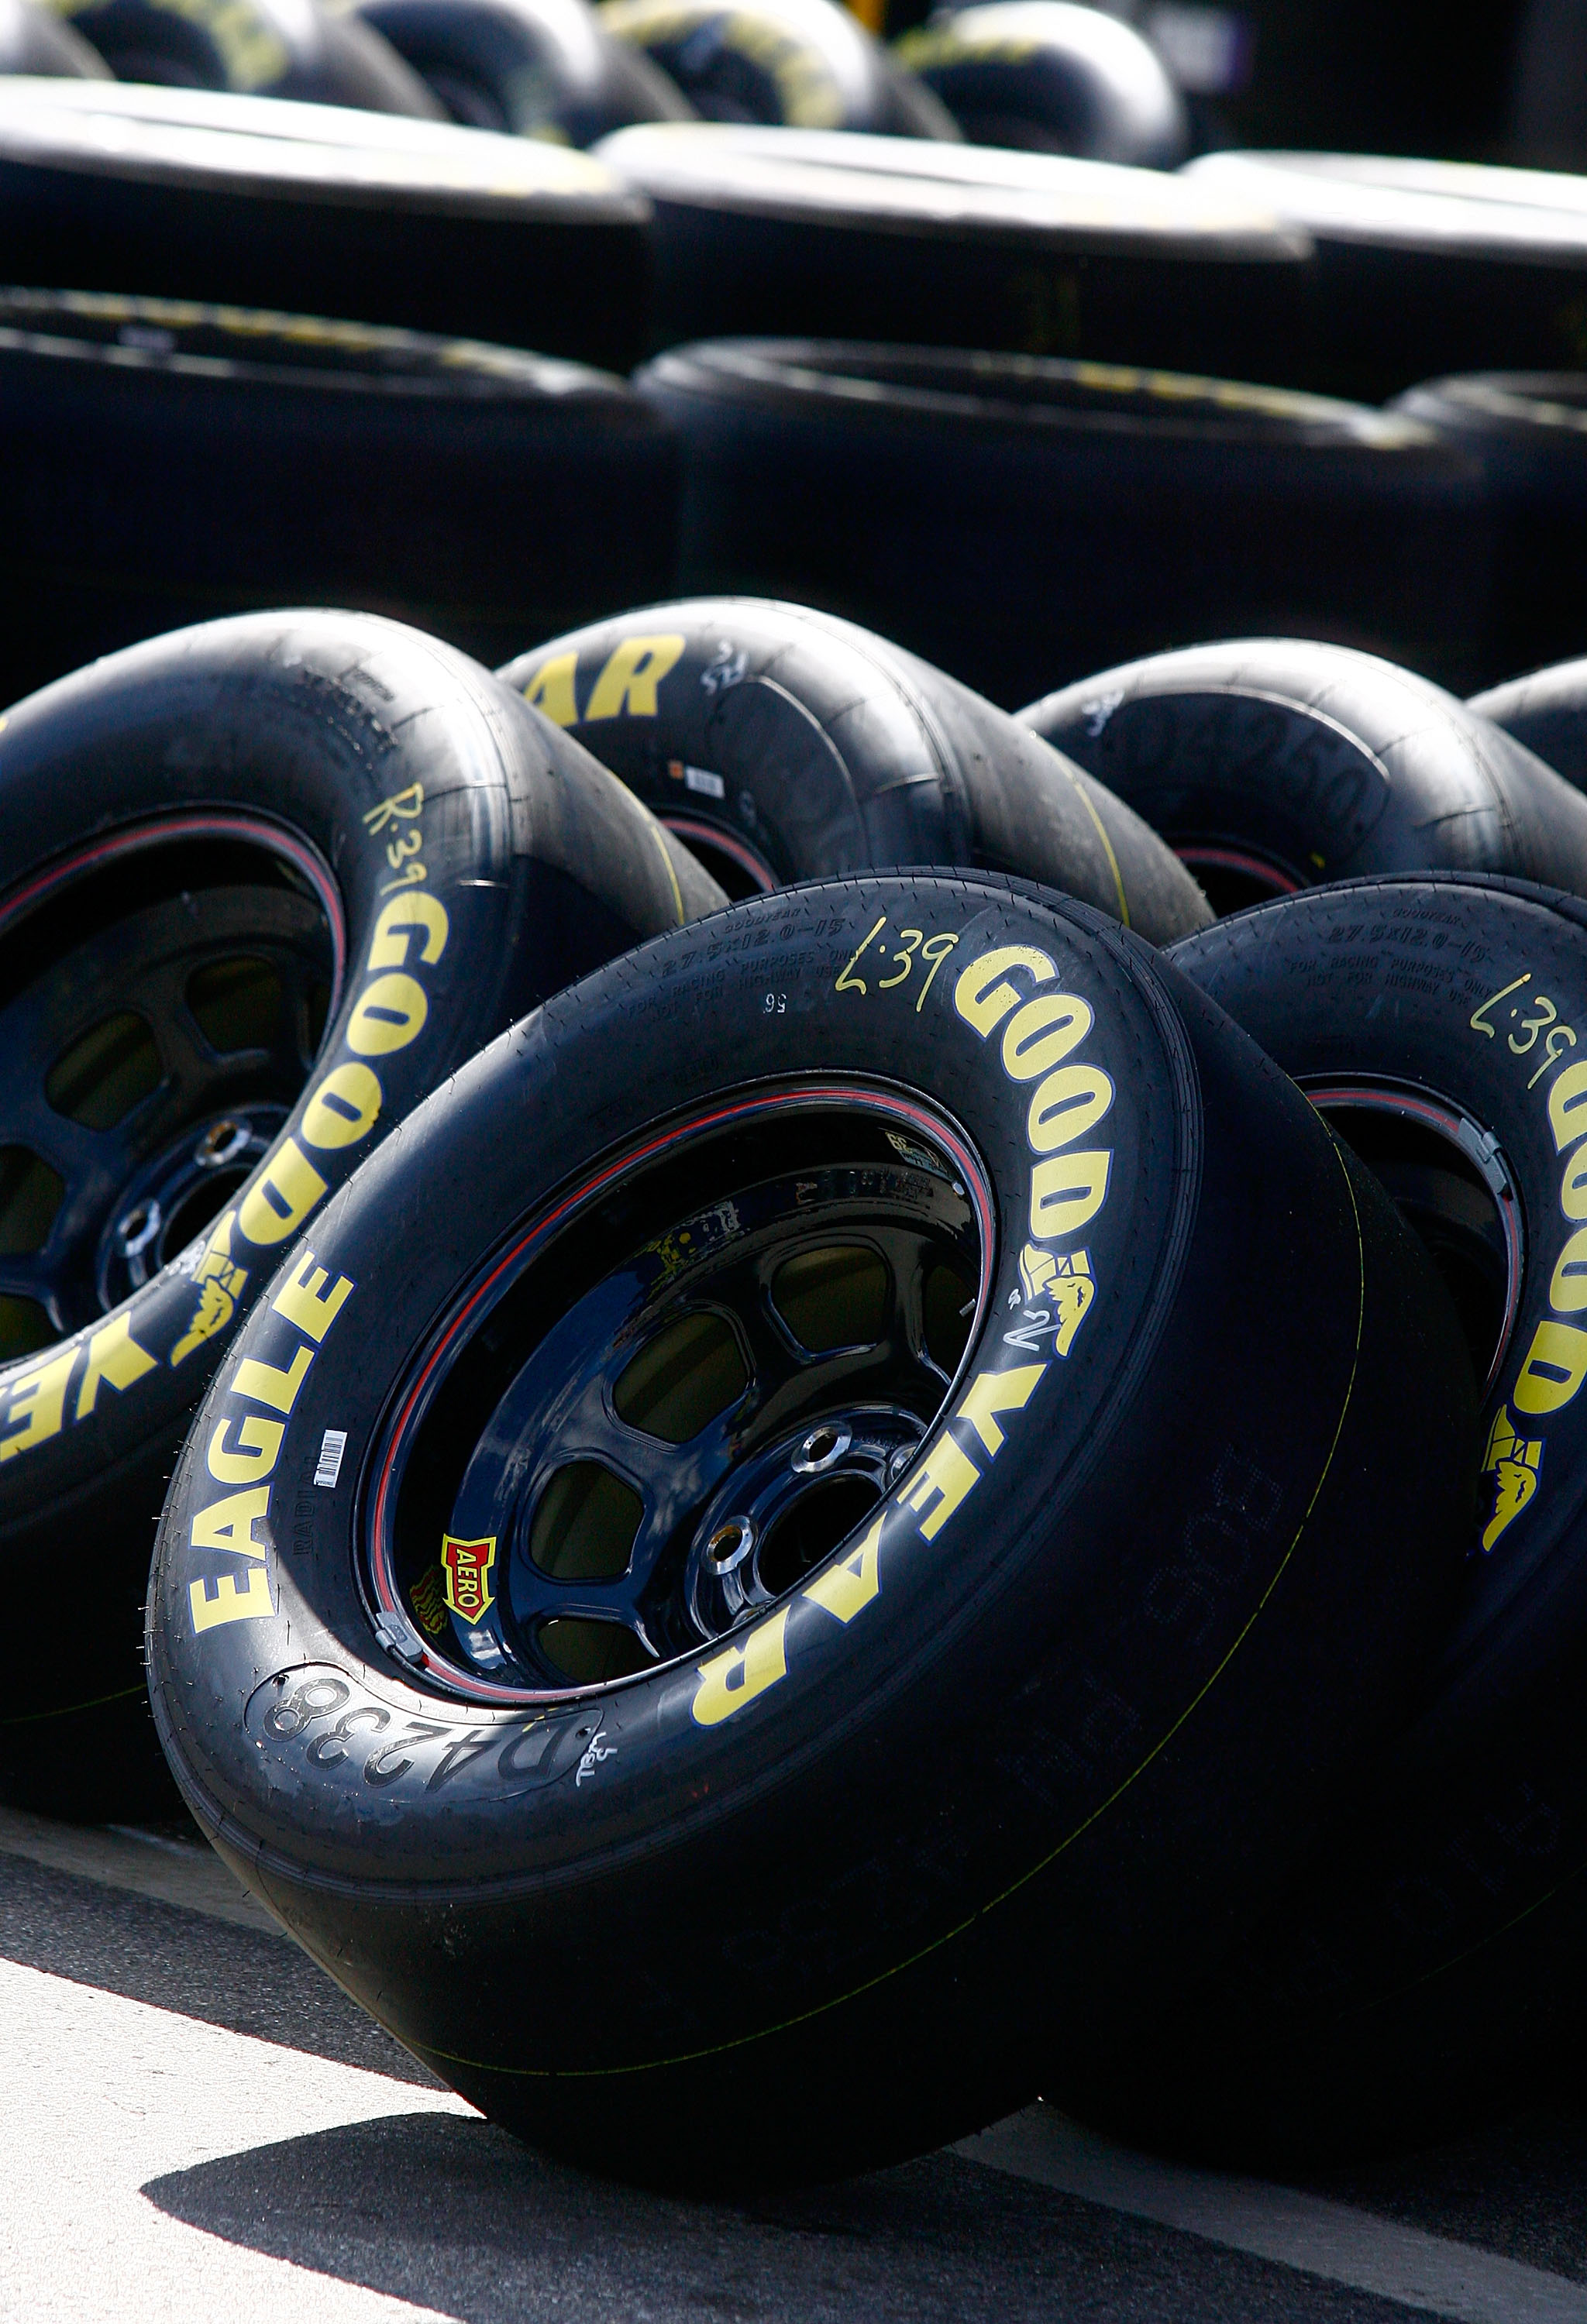 LOUDON, NH - SEPTEMBER 18:  A general view of NASCAR Sprint Cup Goodyear tires in the garage area during practice for the NASCAR Sprint Cup Series Sylvania 300 at New Hampshire Motor Speedway on September 18, 2010 in Loudon, New Hampshire.  (Photo by Jaso